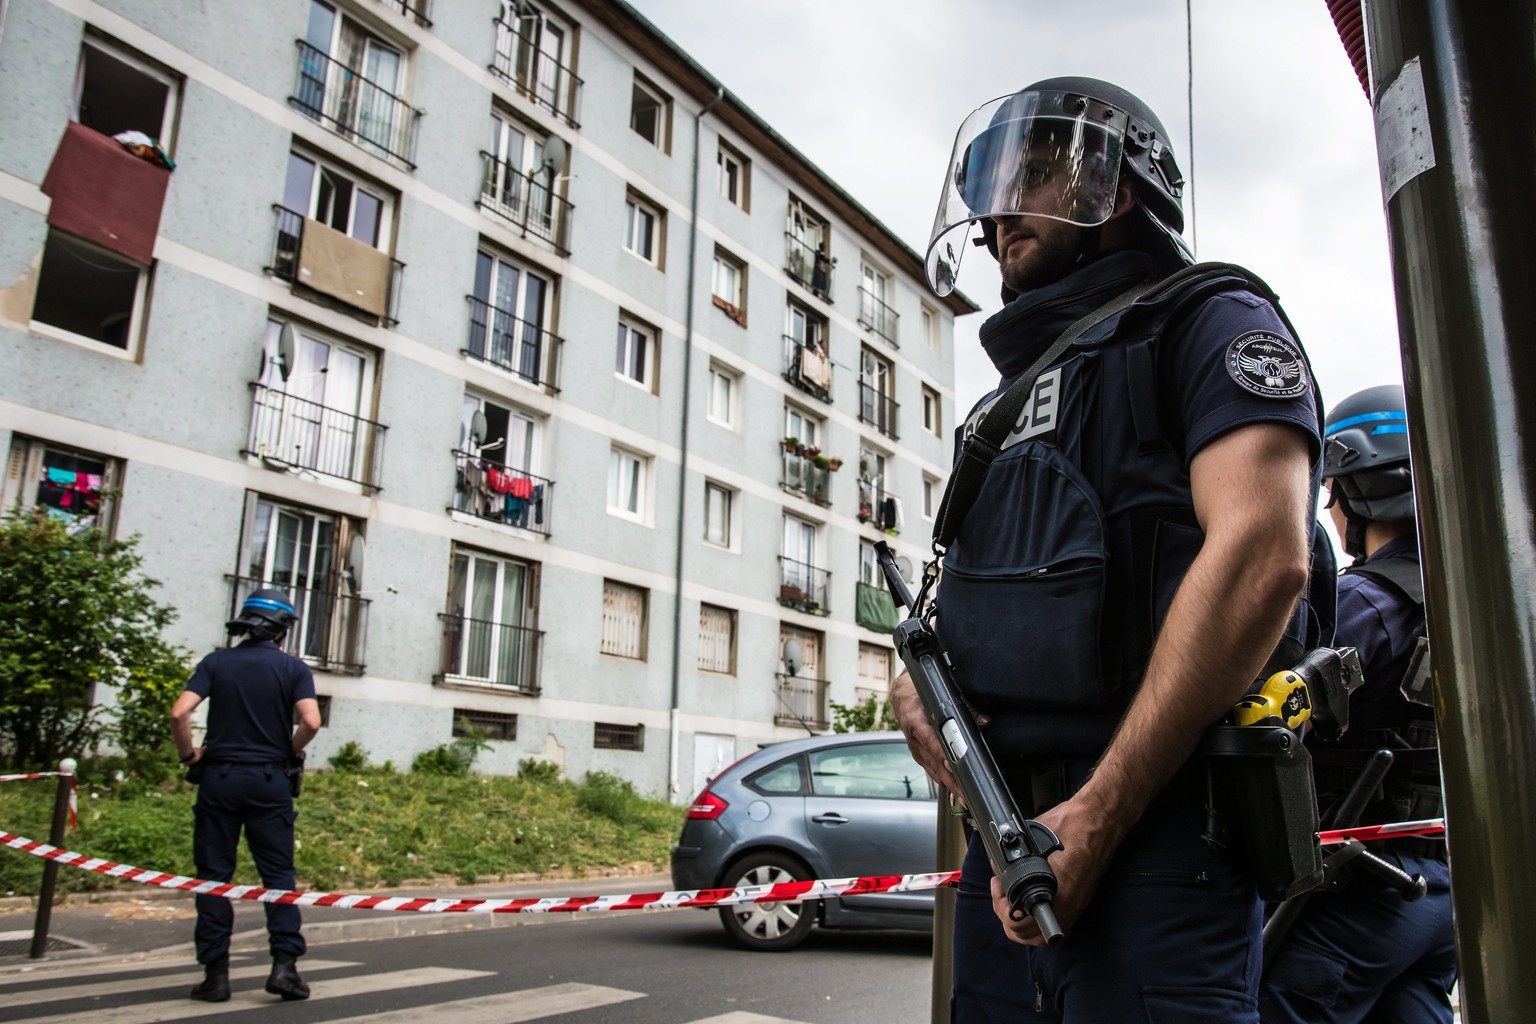 epa05435191 Police officers patrol a security perimeter during police operations in the Val Notre Dame neigborhood in Argenteuil, near Paris, France, 21 July 2016. According to reports, the operation is not linked to the Nice truck attack.  EPA/CHRISTOPHE PETIT TESSON